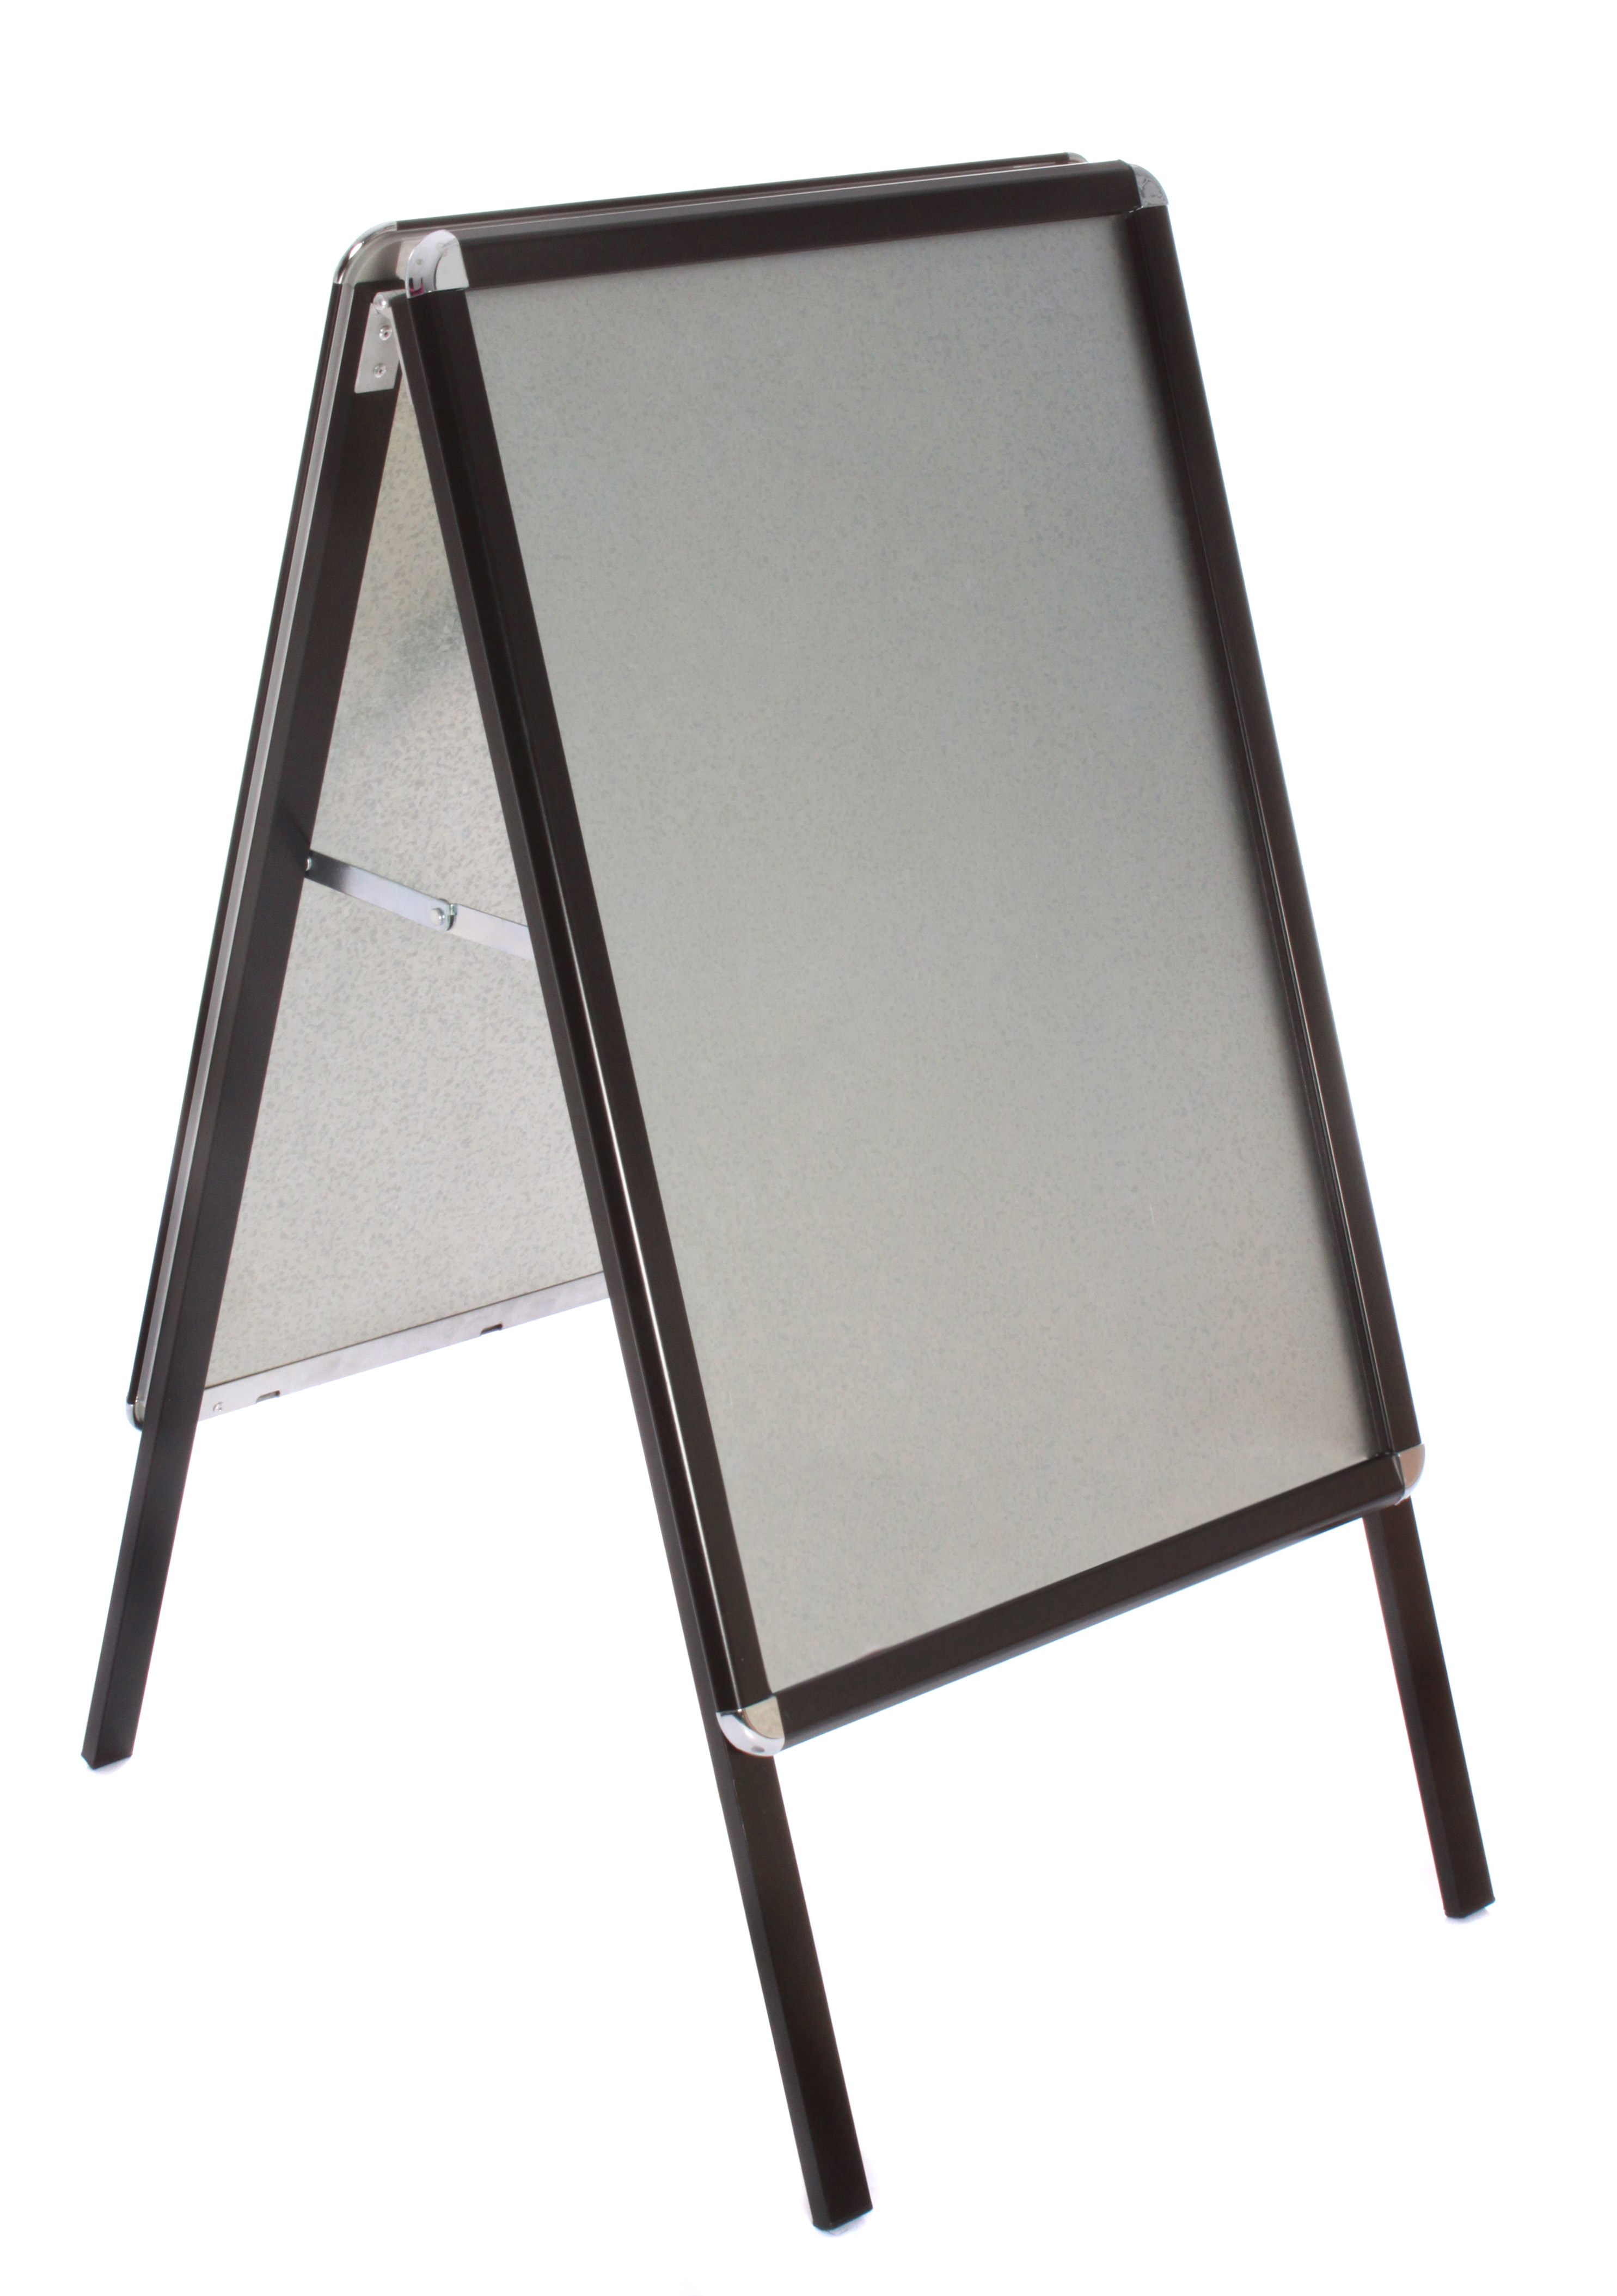 A Board Pavement Sign 30 x 40 Inch Snap Frame A-Board Black Frame